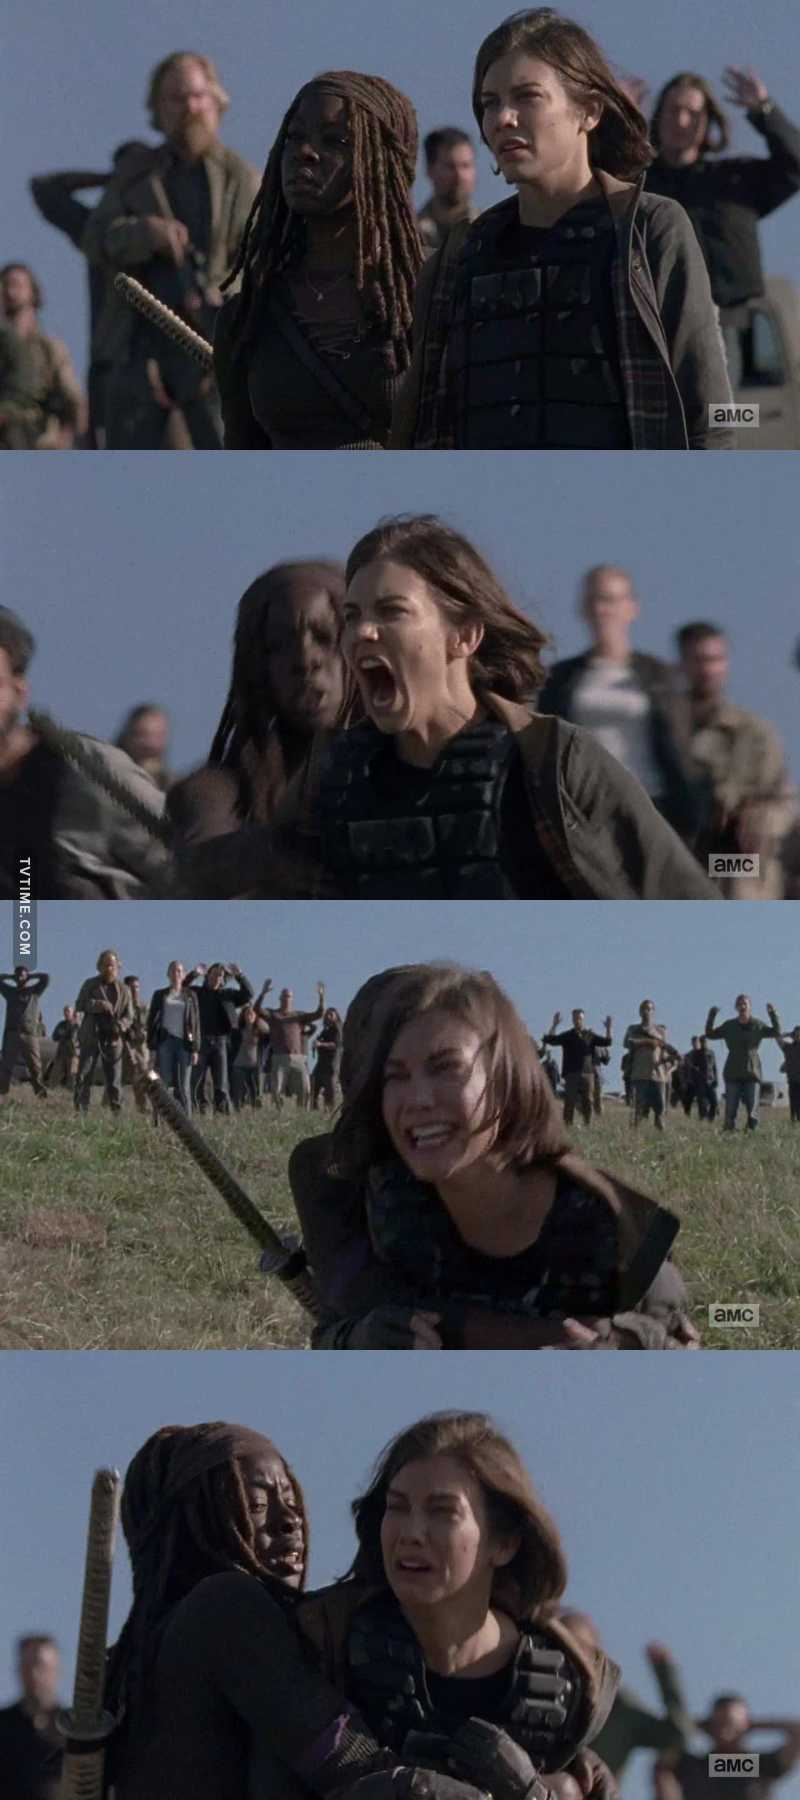 Lauren Cohan really owned this scene. She portrays Maggie Rhee so brilliantly. Pay the woman!!!